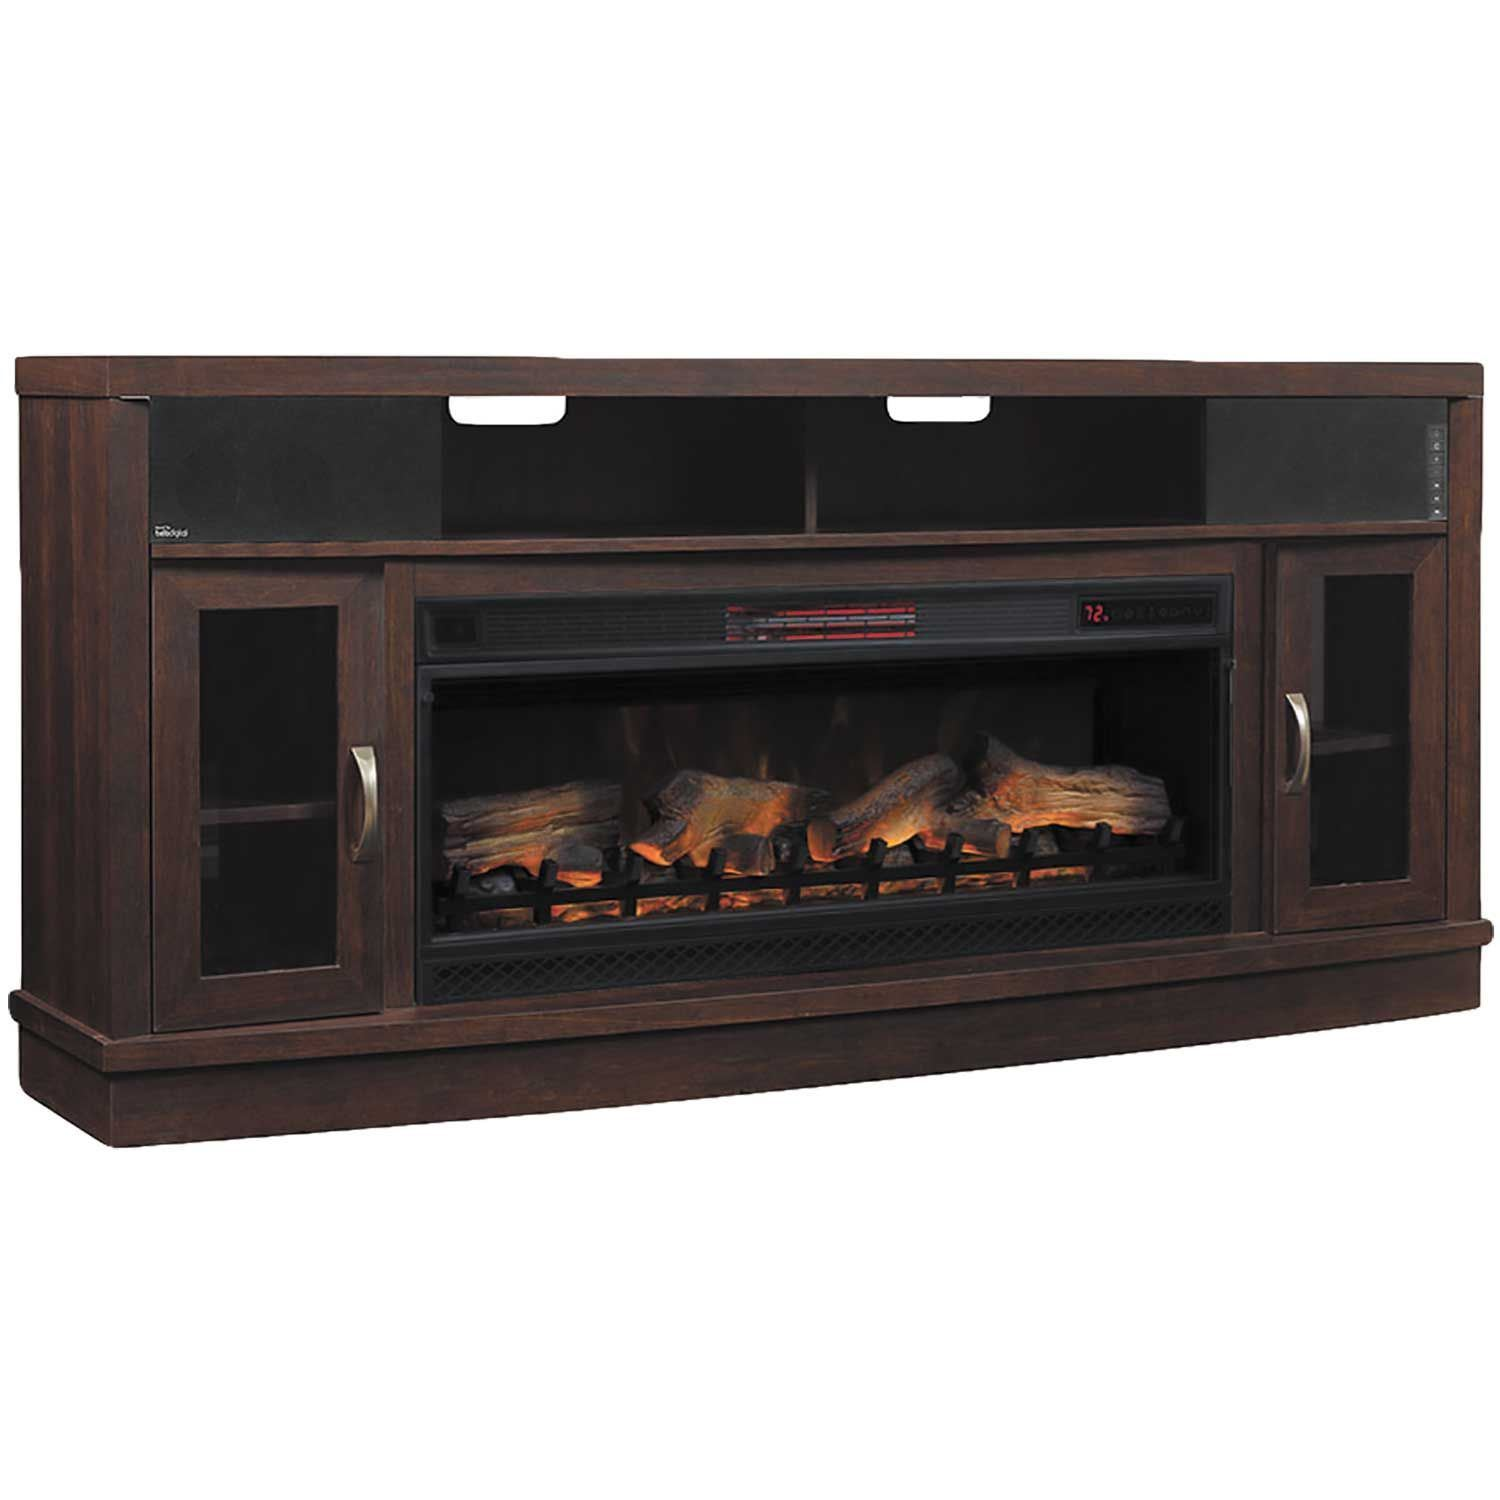 Picture of Deerfield Media Fireplace